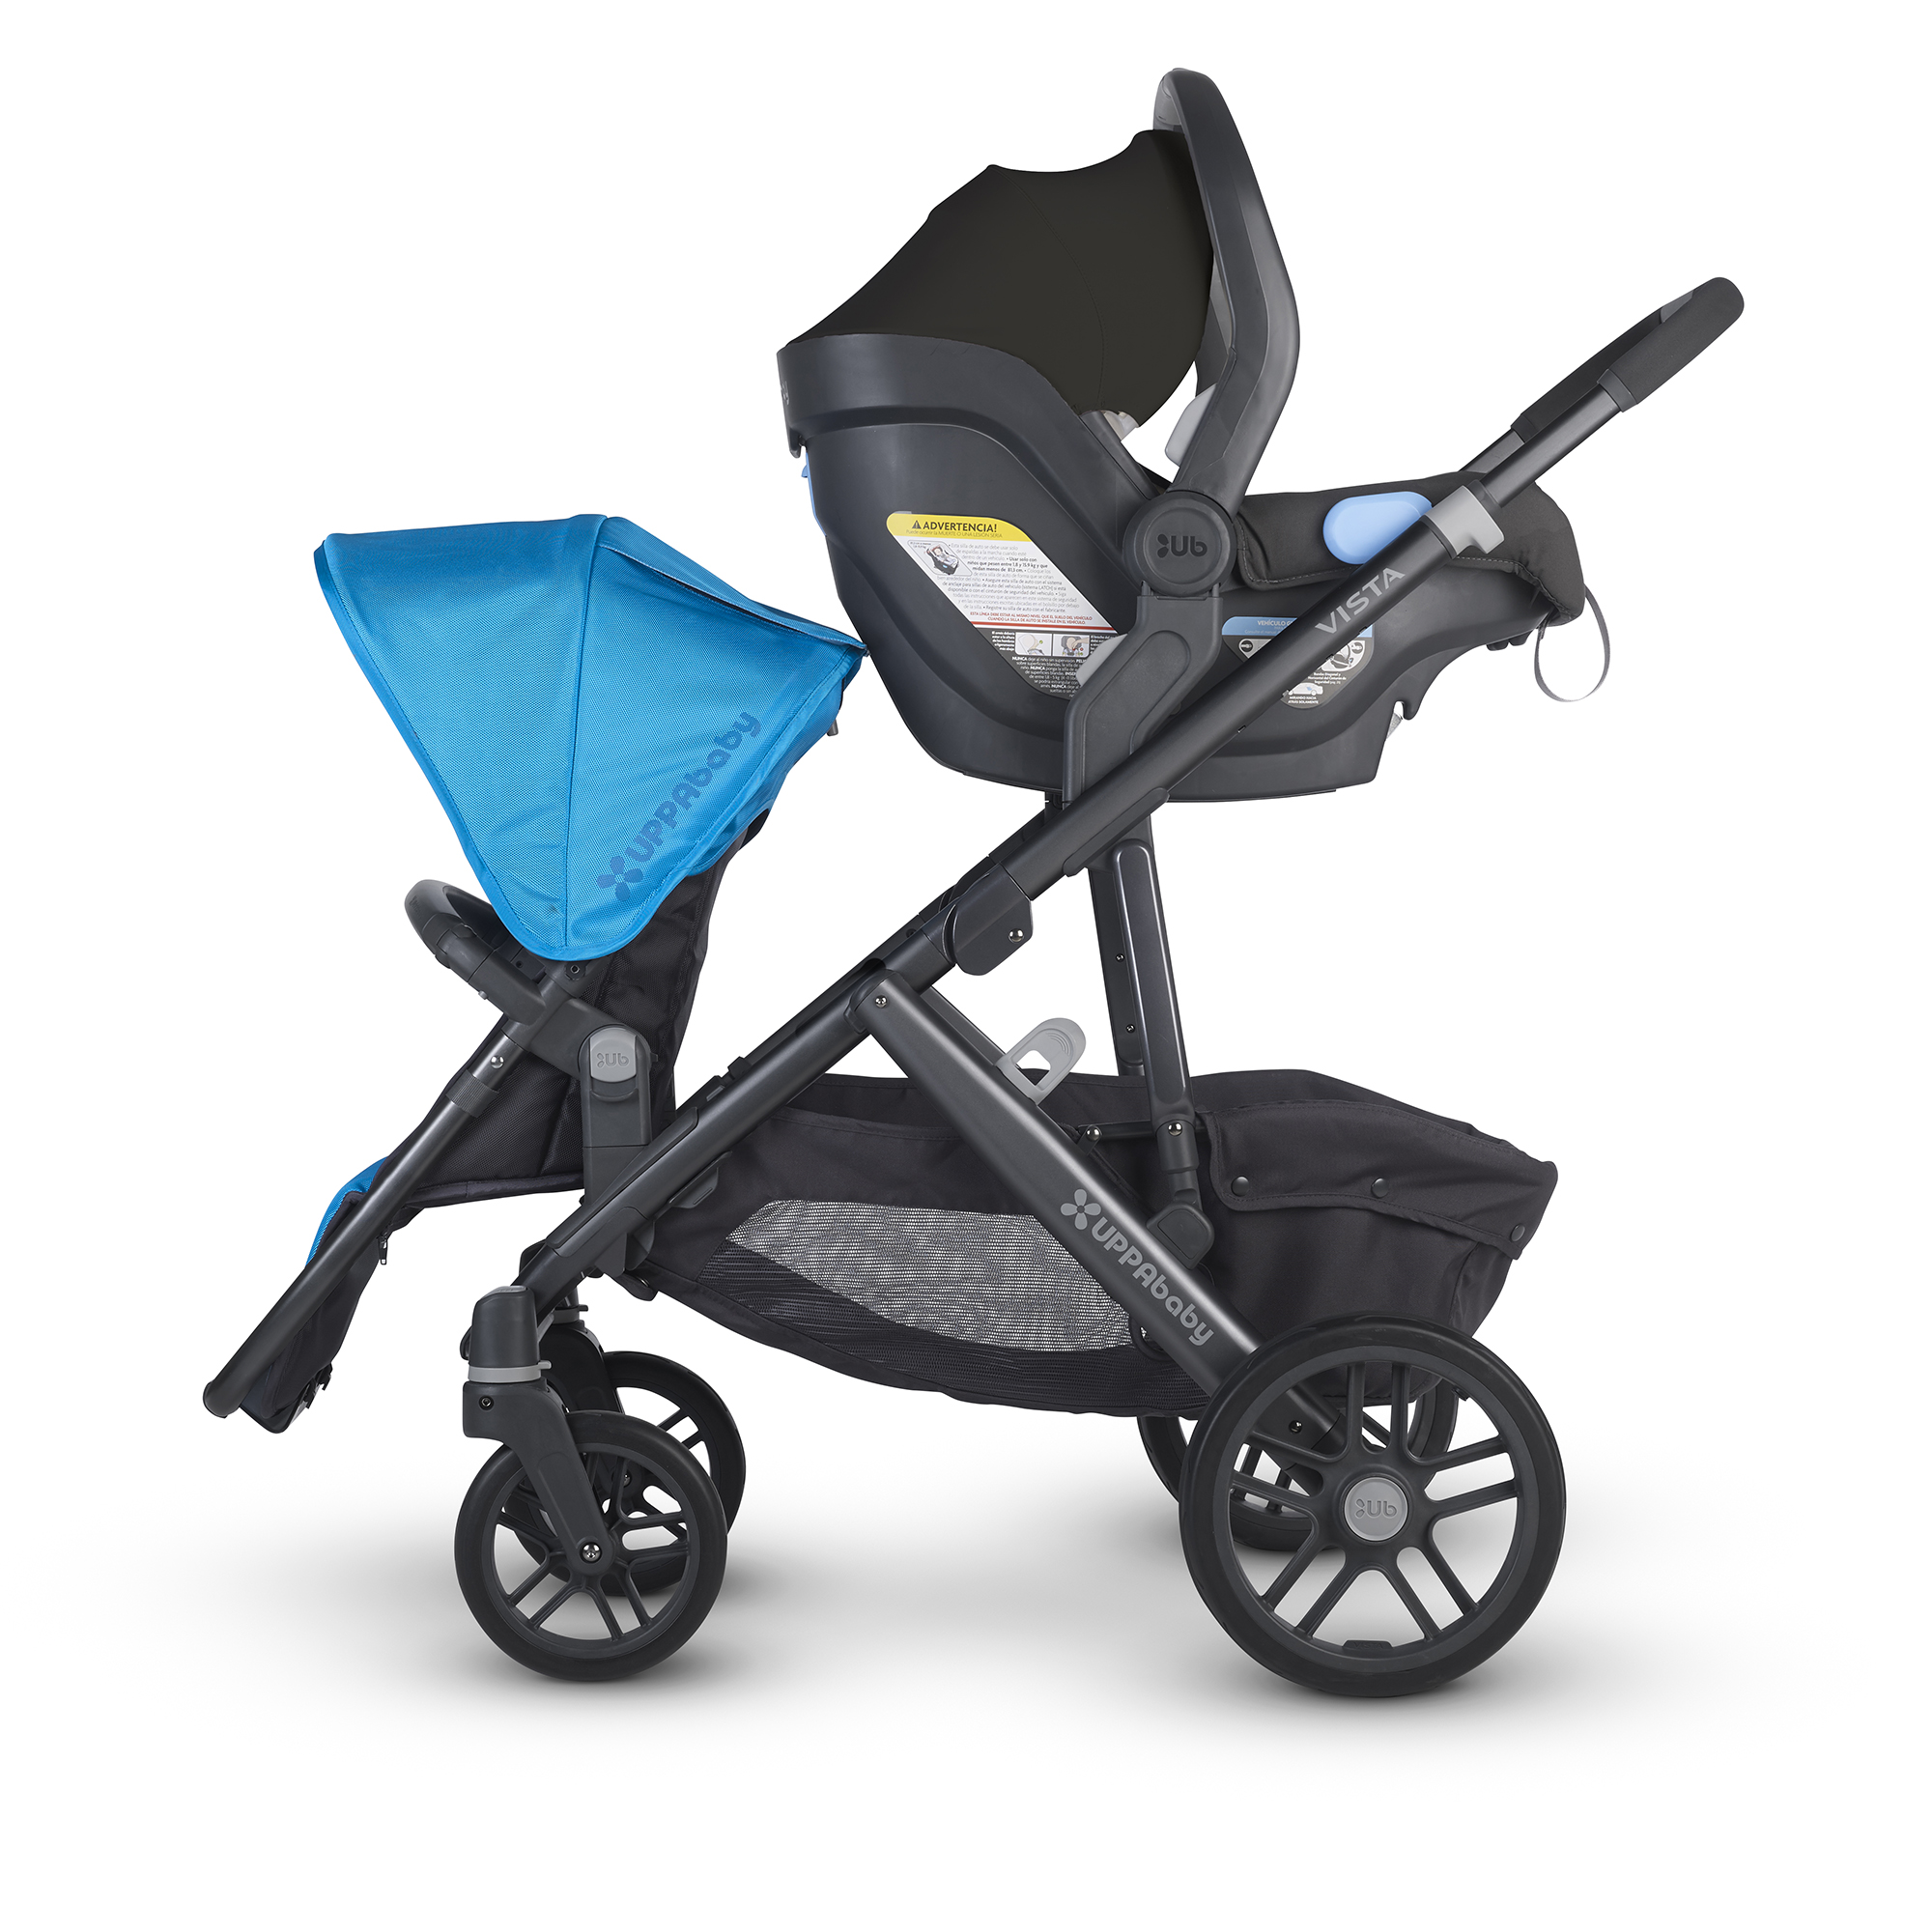 Portable Newborn Baby Stroller 3 In 1 Car Seat Stroller Uppababy Vista Stroller Reviews Best Full Size Strollers